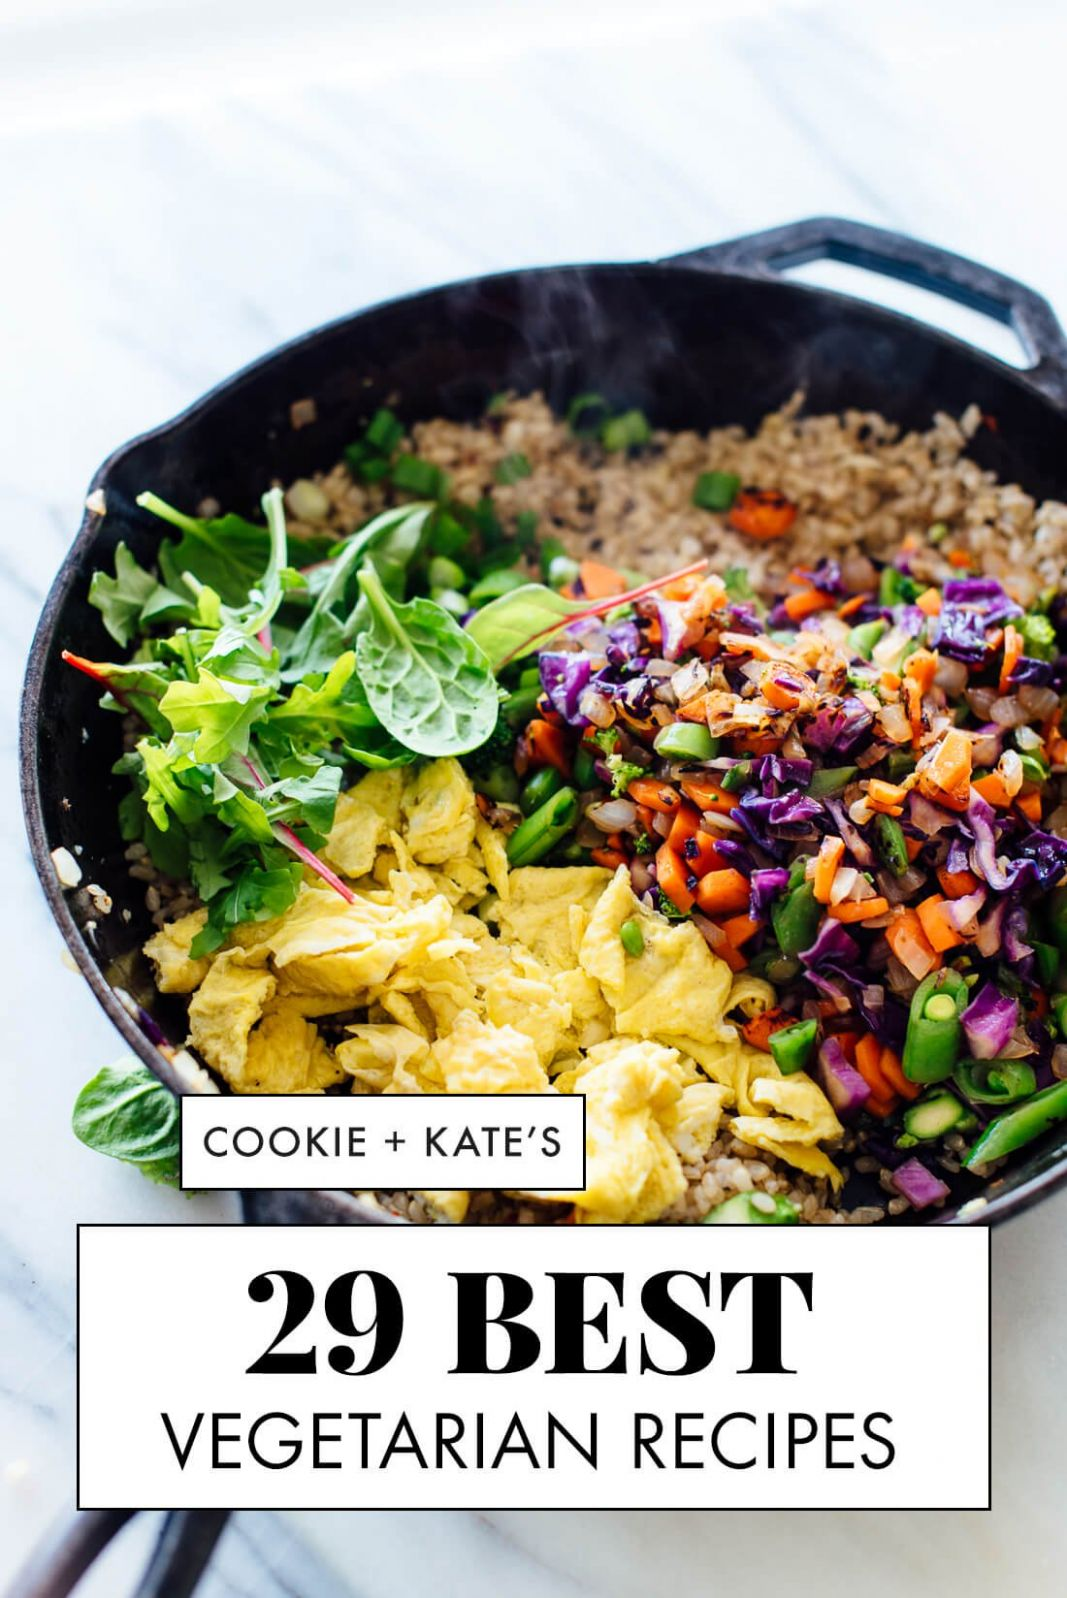 9 Best Vegetarian Recipes - Cookie and Kate - Recipes Vegetables Only